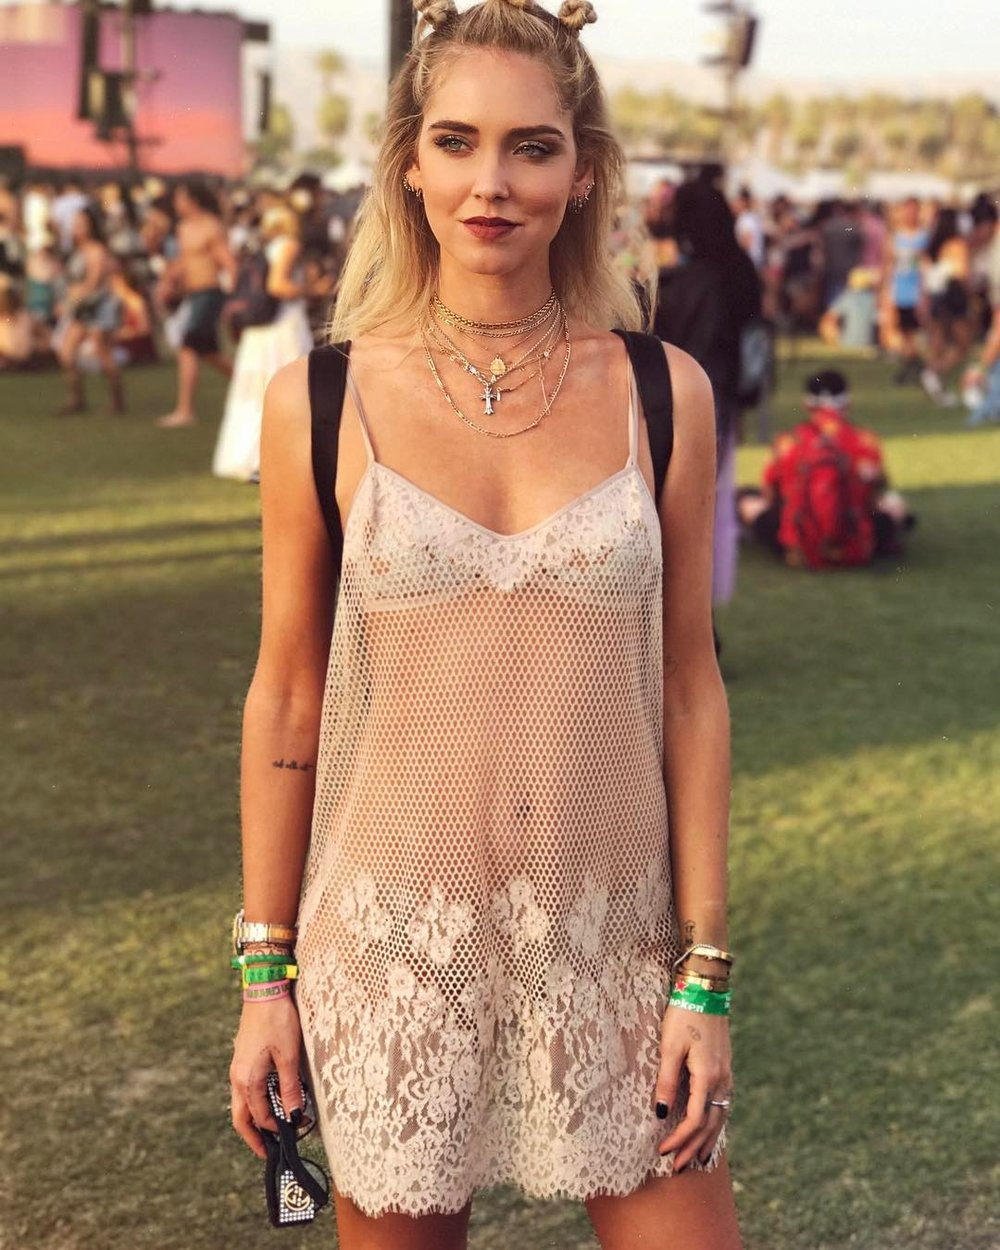 WHAT-TO-WEAR-TO-A-MUSIC-FESTIVAL